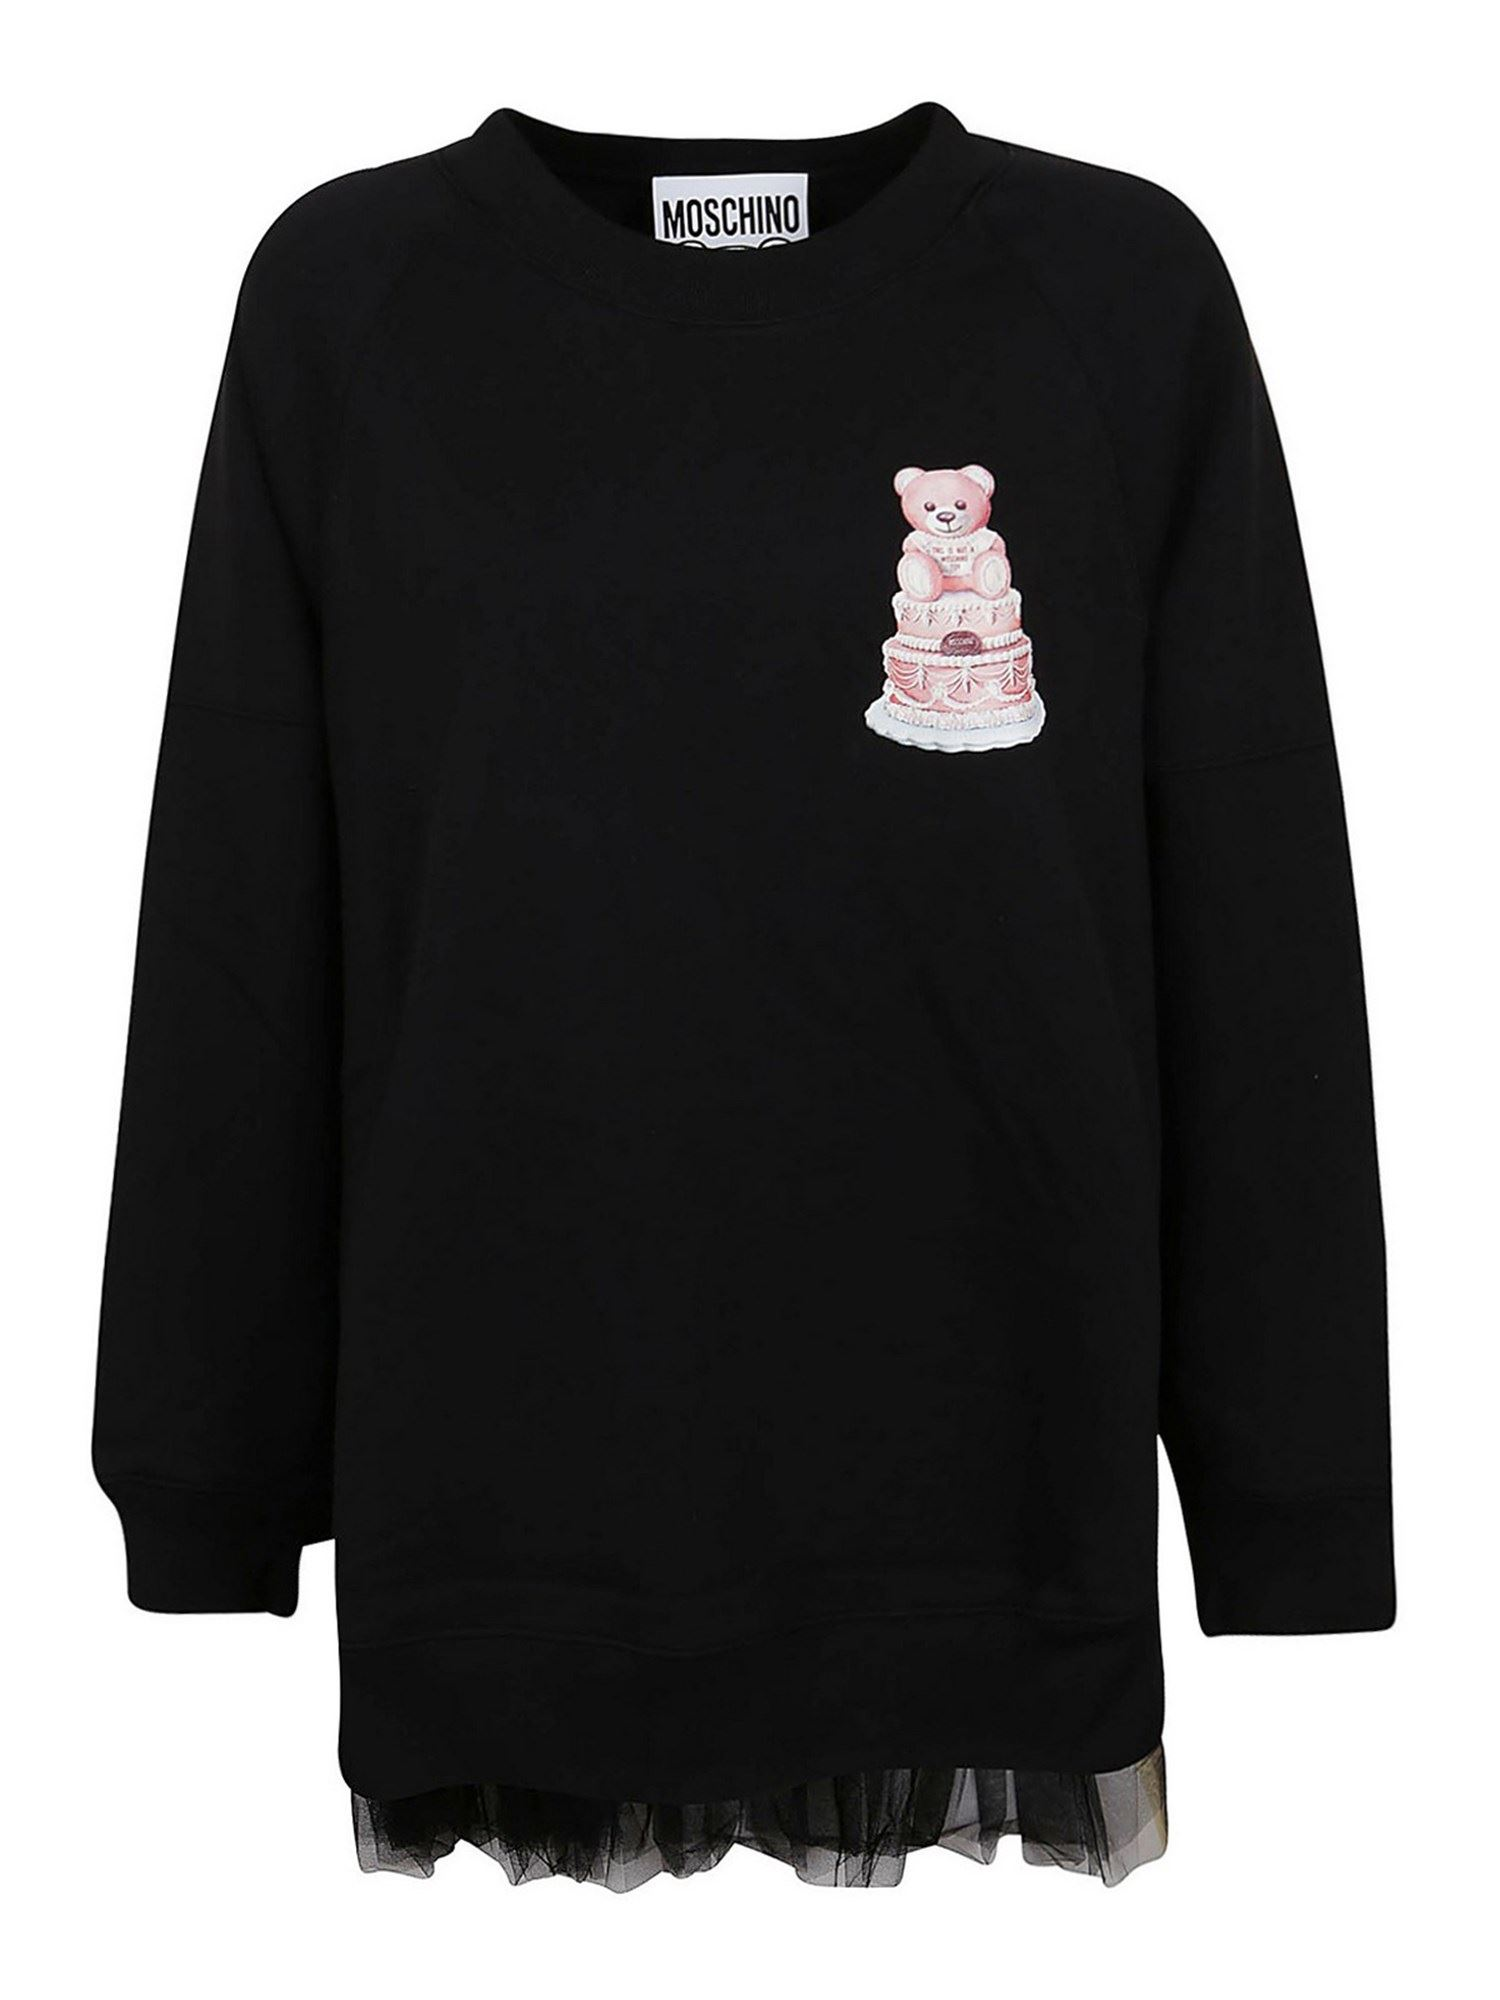 Moschino CAKE TEDDY BEAR LOGO SWEATSHIRT